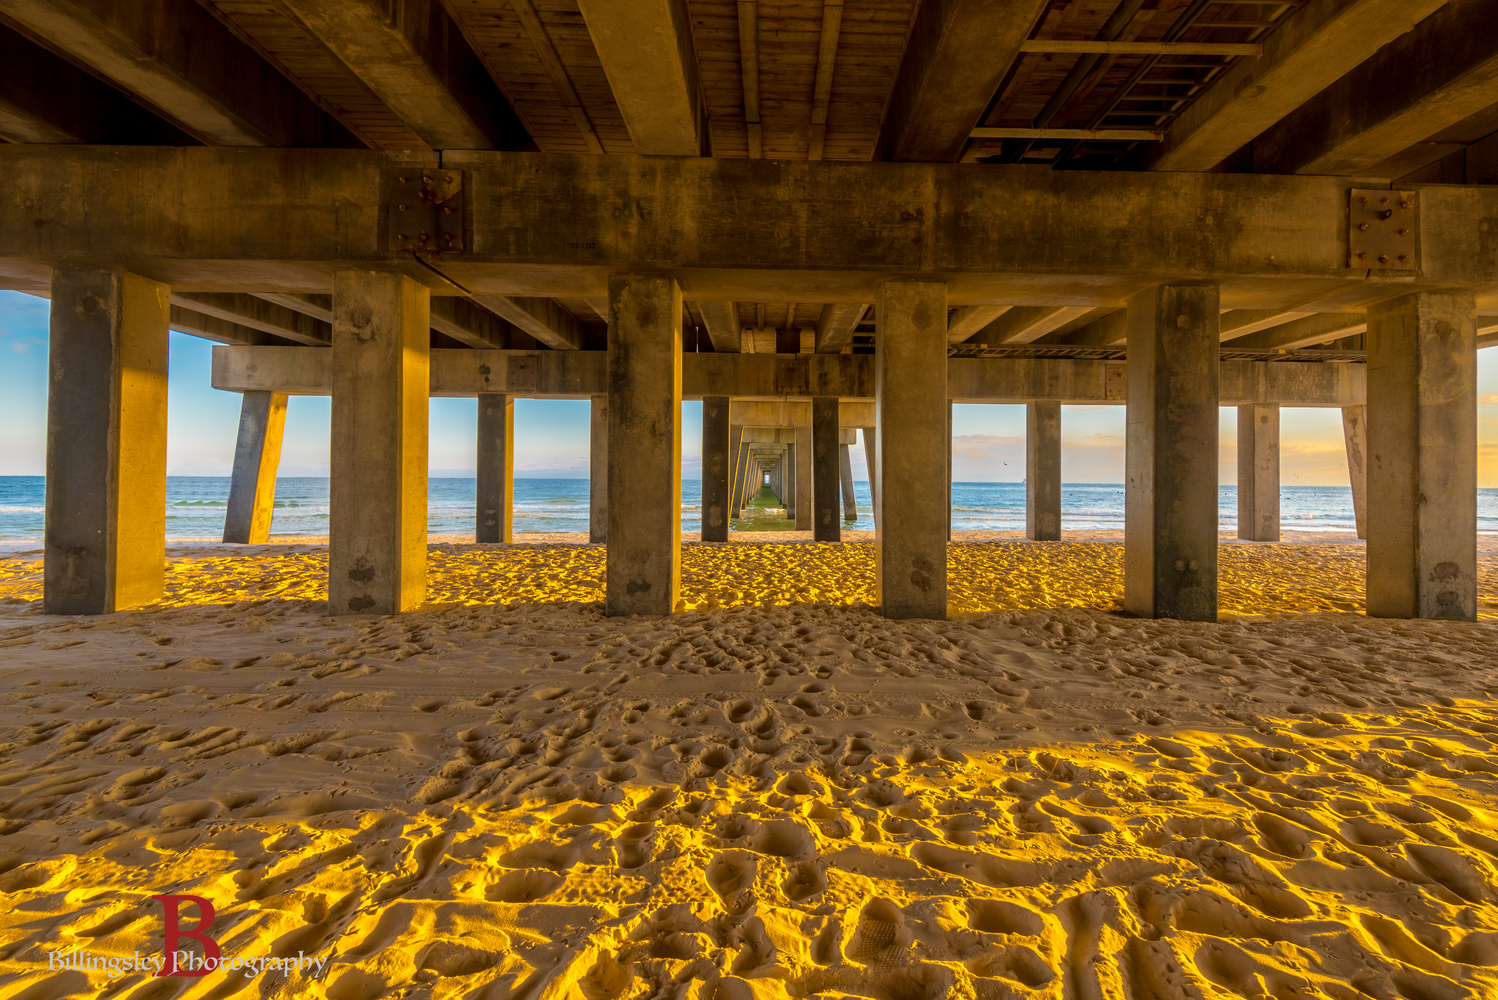 Under the Dock by Cliff Billingsley